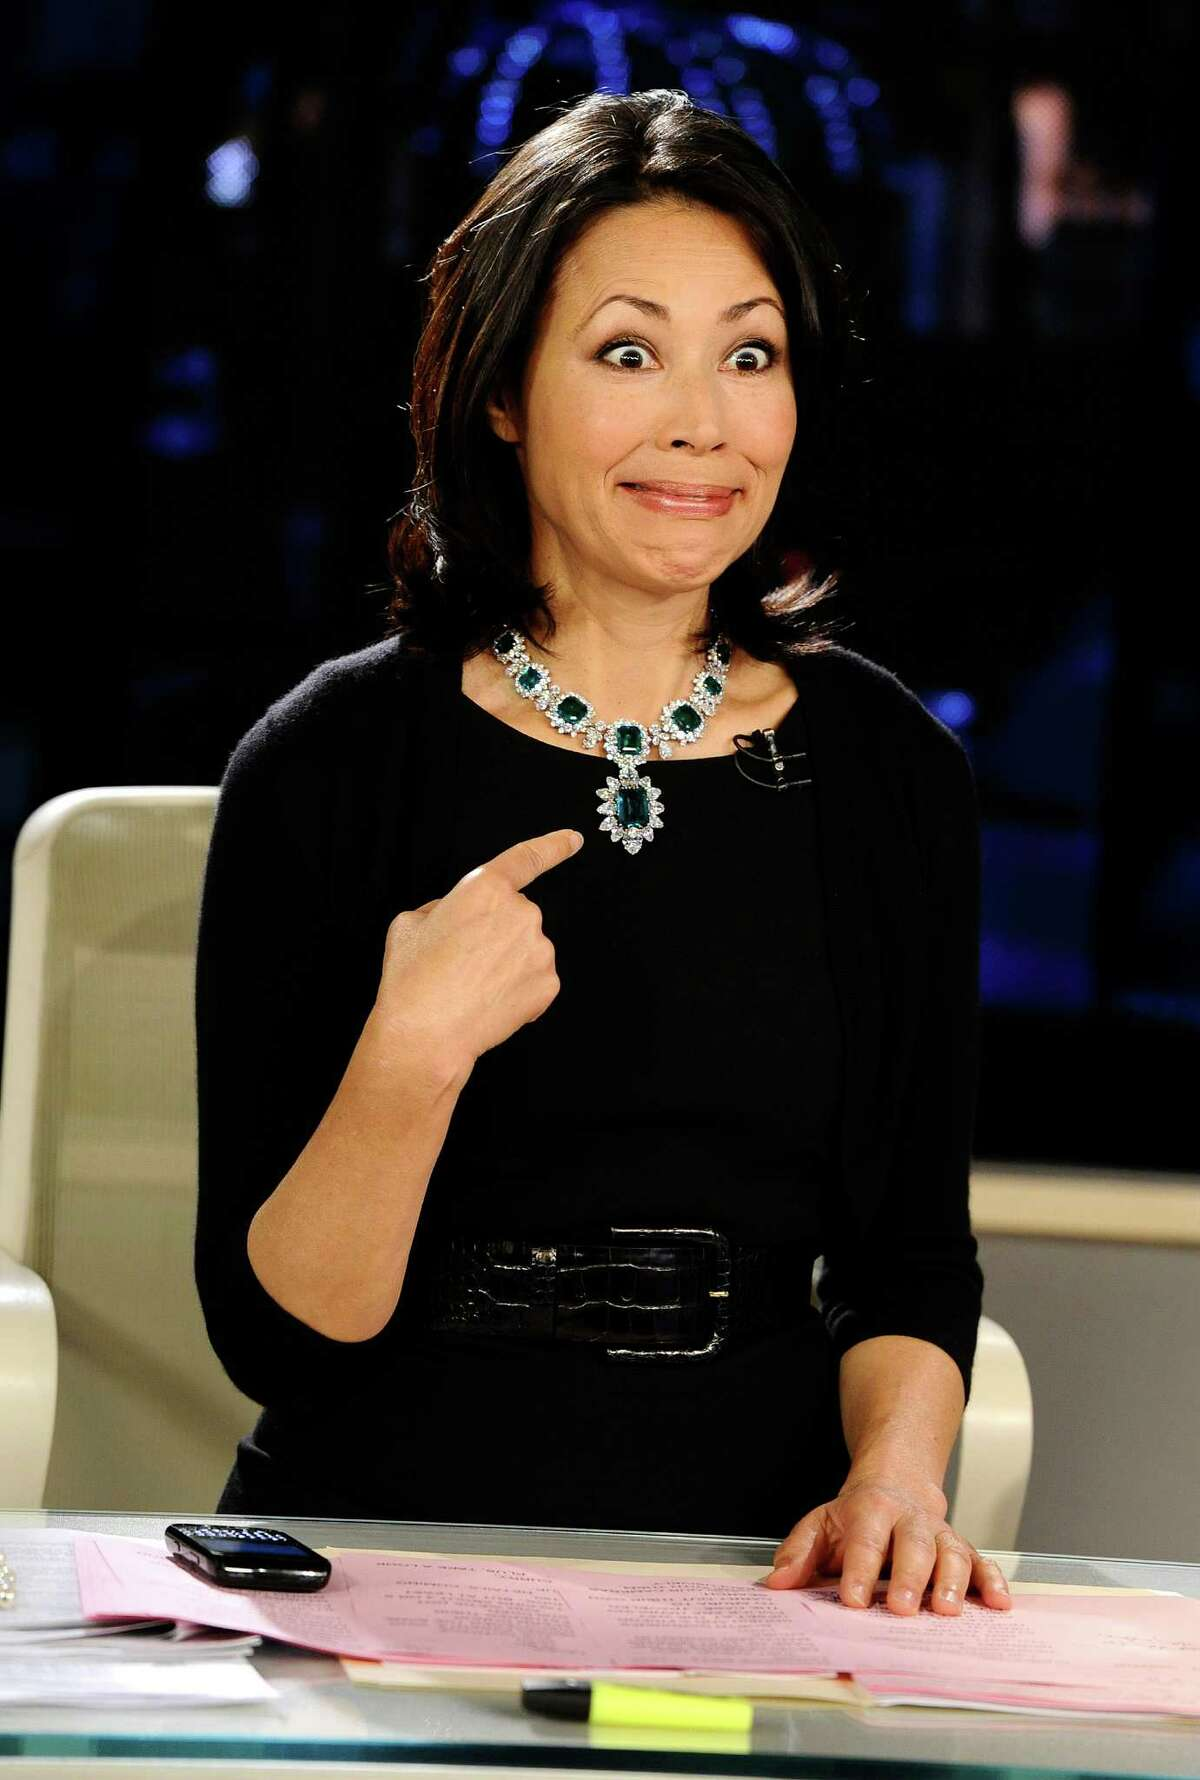 This Sept. 7, 2011 photo released by NBC shows co-host Ann Curry modeling one of Elizabeth Taylor's necklaces, which was auctioned by Christie's, on the